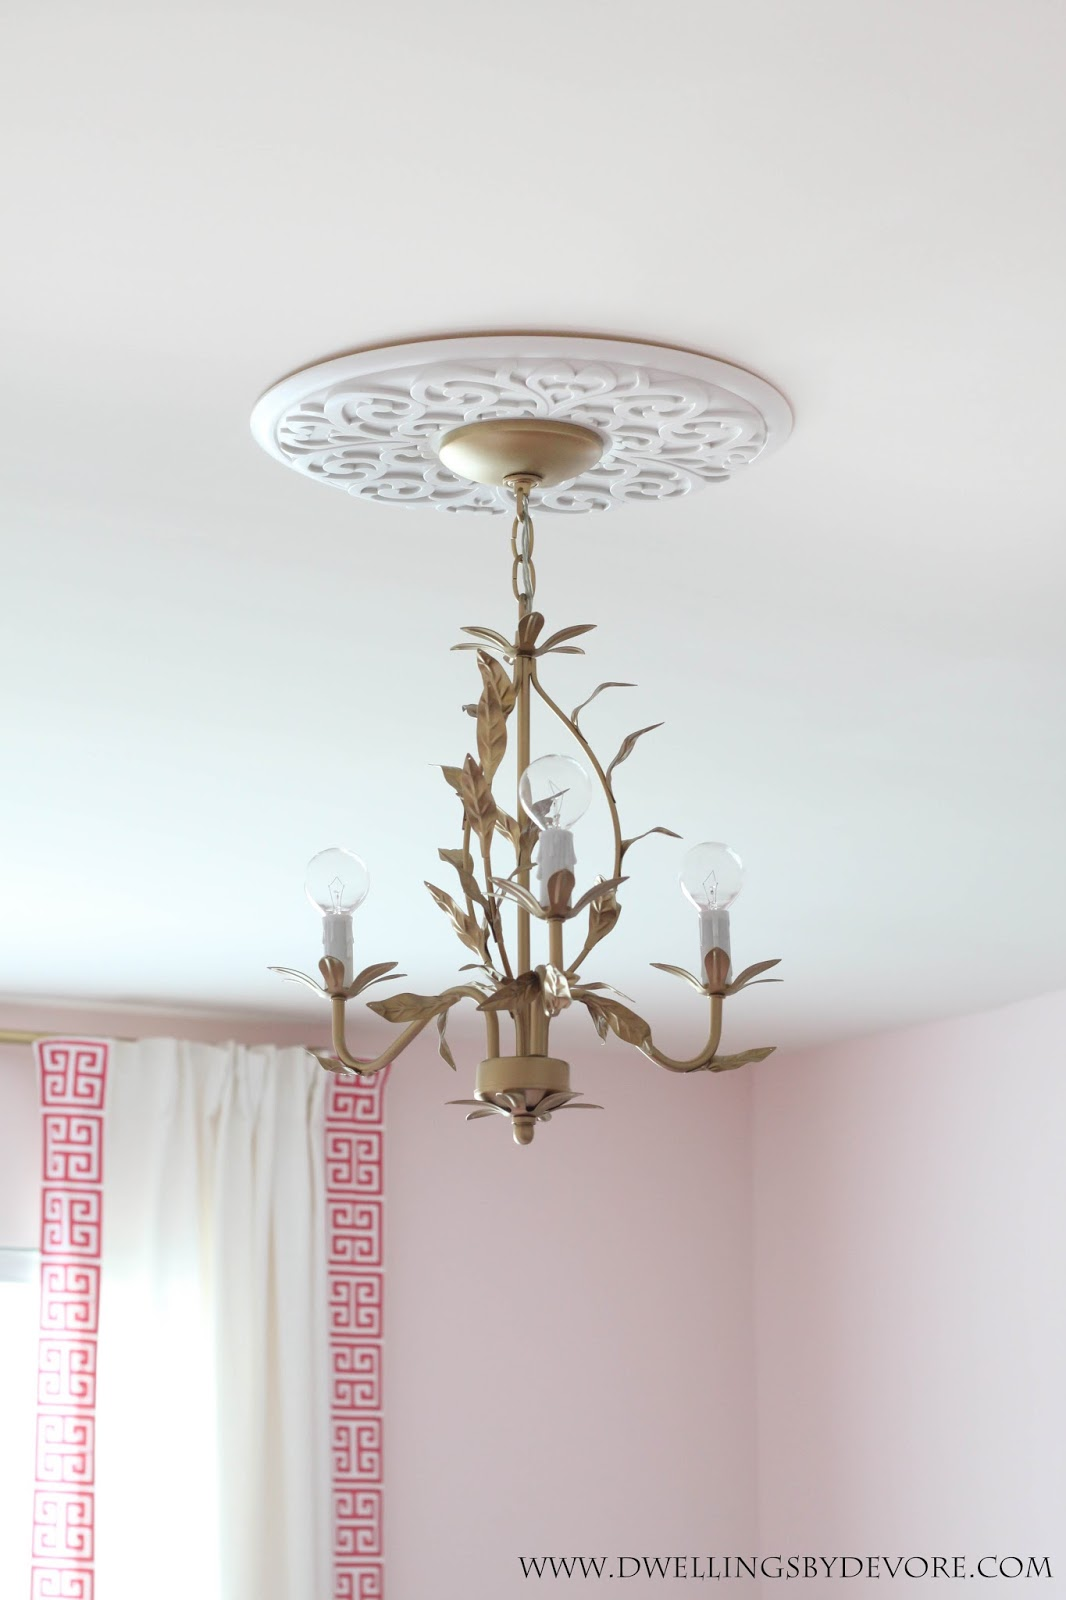 Dwellings by devore gold chandelier gold chandelier mozeypictures Images